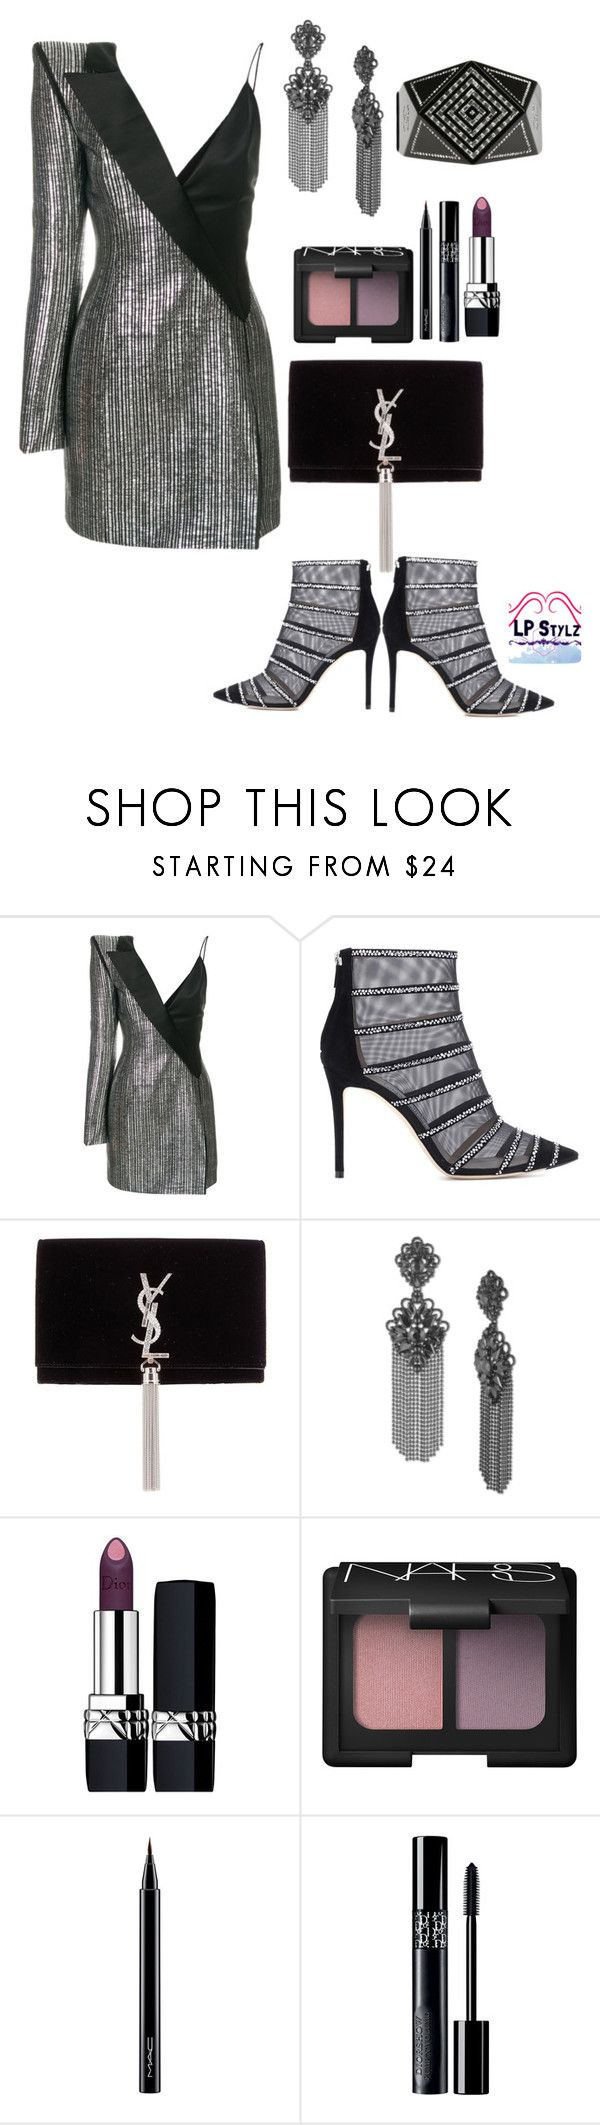 """A Night on The Town"" by lpstylz30 ❤ liked on Polyvore featuring Thierry Mugler, Jimmy Choo, Yves Saint Laurent, Marchesa, Christian Dior, NARS Cosmetics, MAC Cosmetics and Chanel"